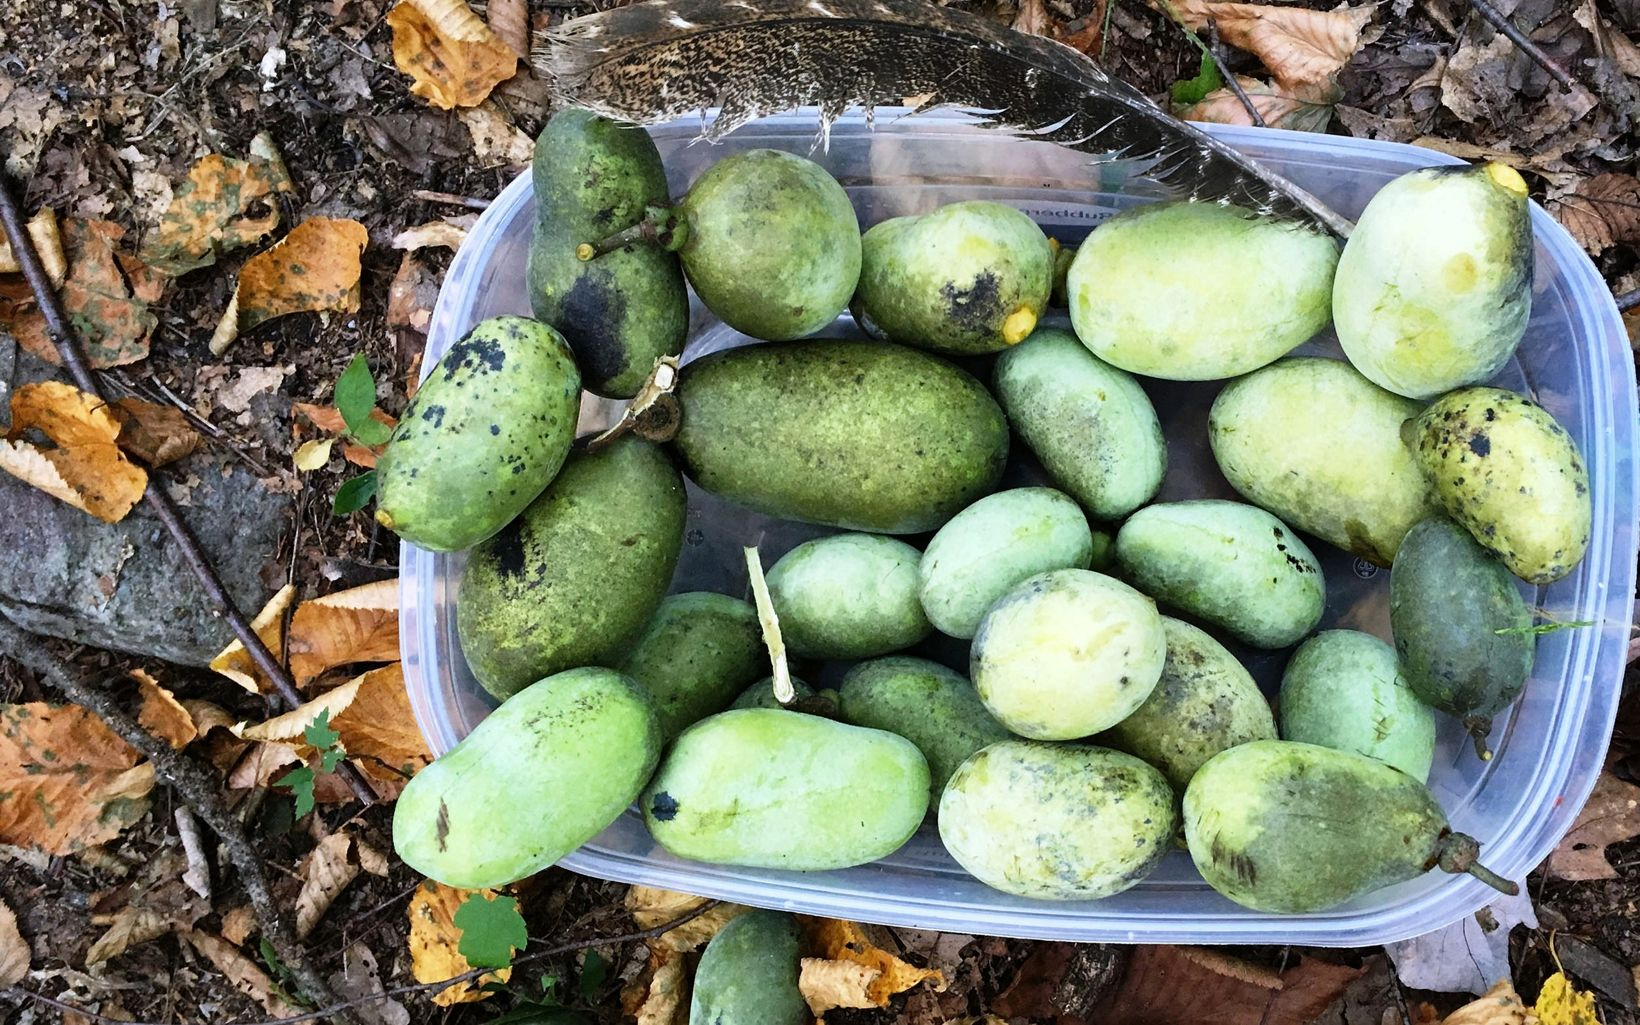 A single feather adorns a bin full of paw paw fruit.